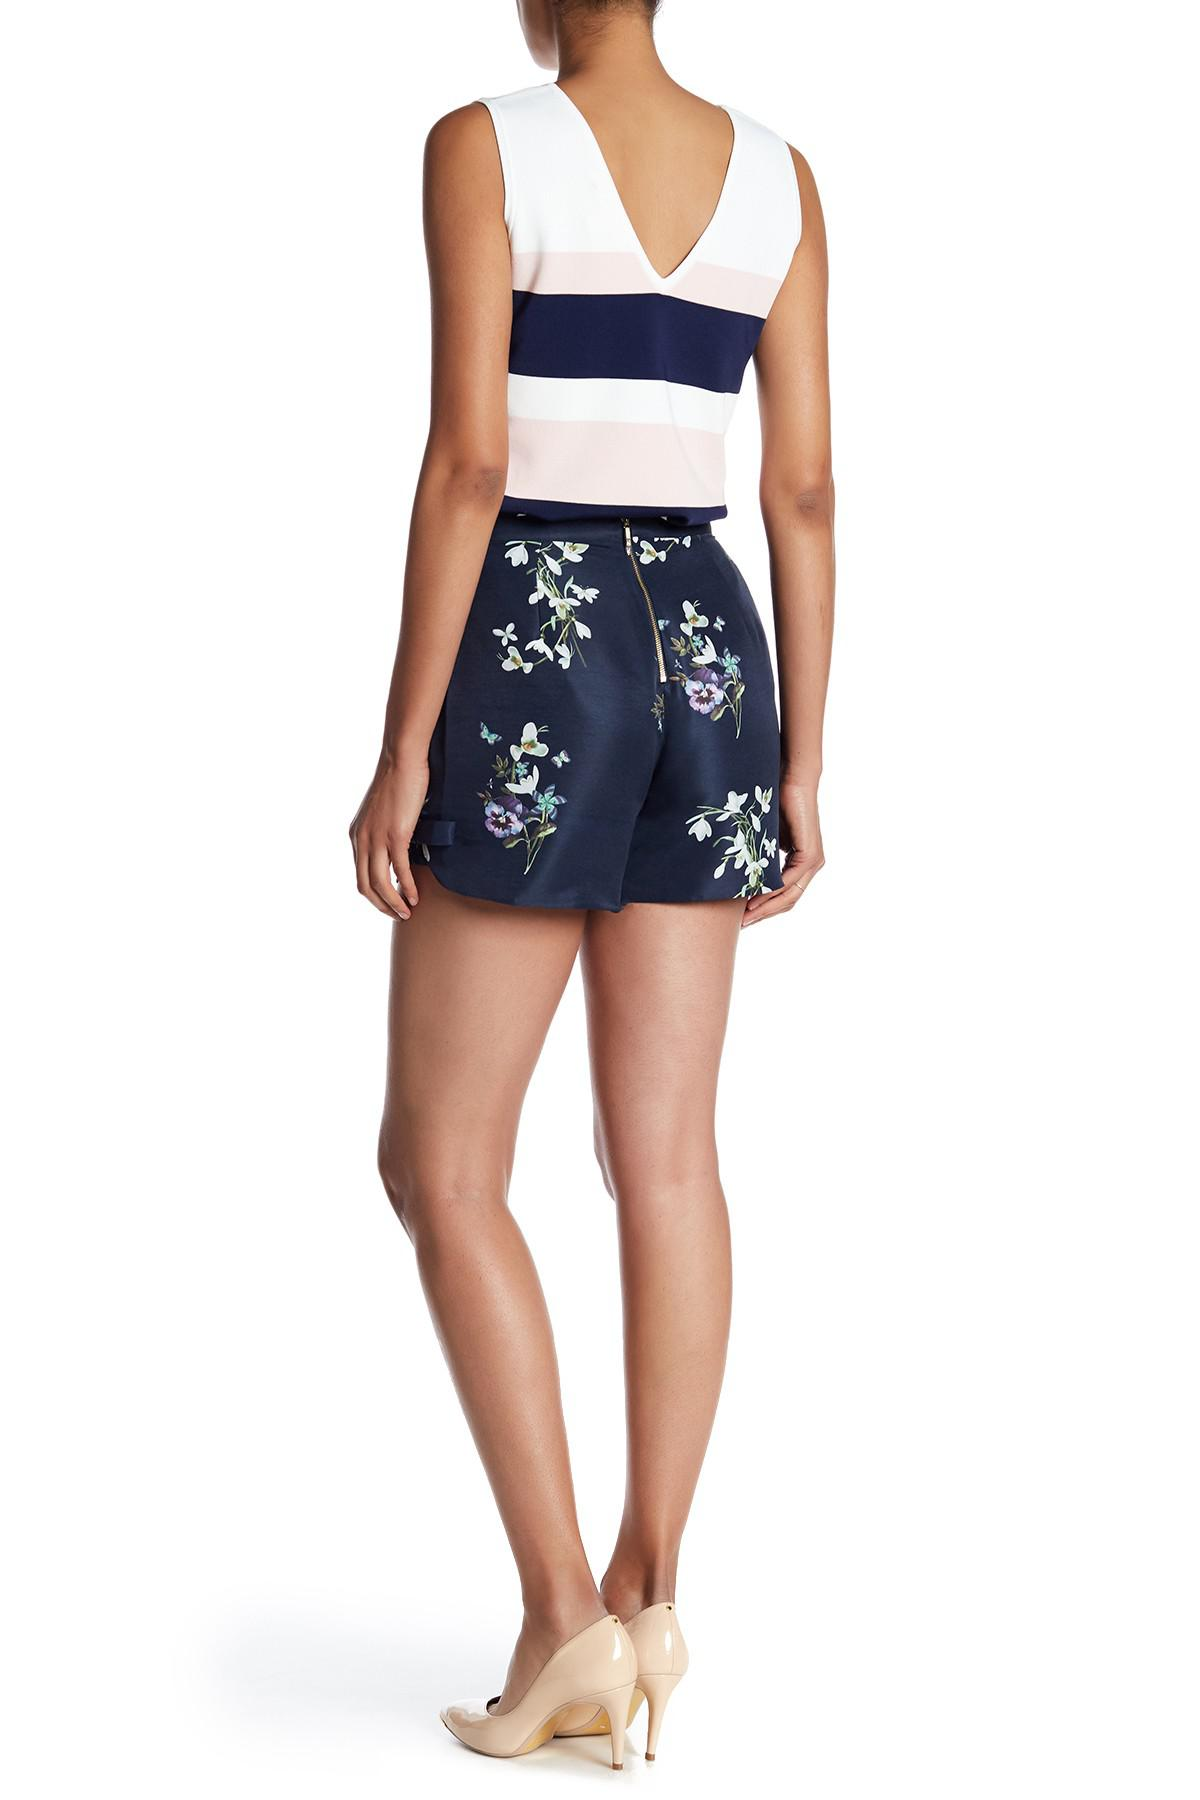 a68407b47 Lyst - Ted Baker Anthia Floral Print Shorts in Blue